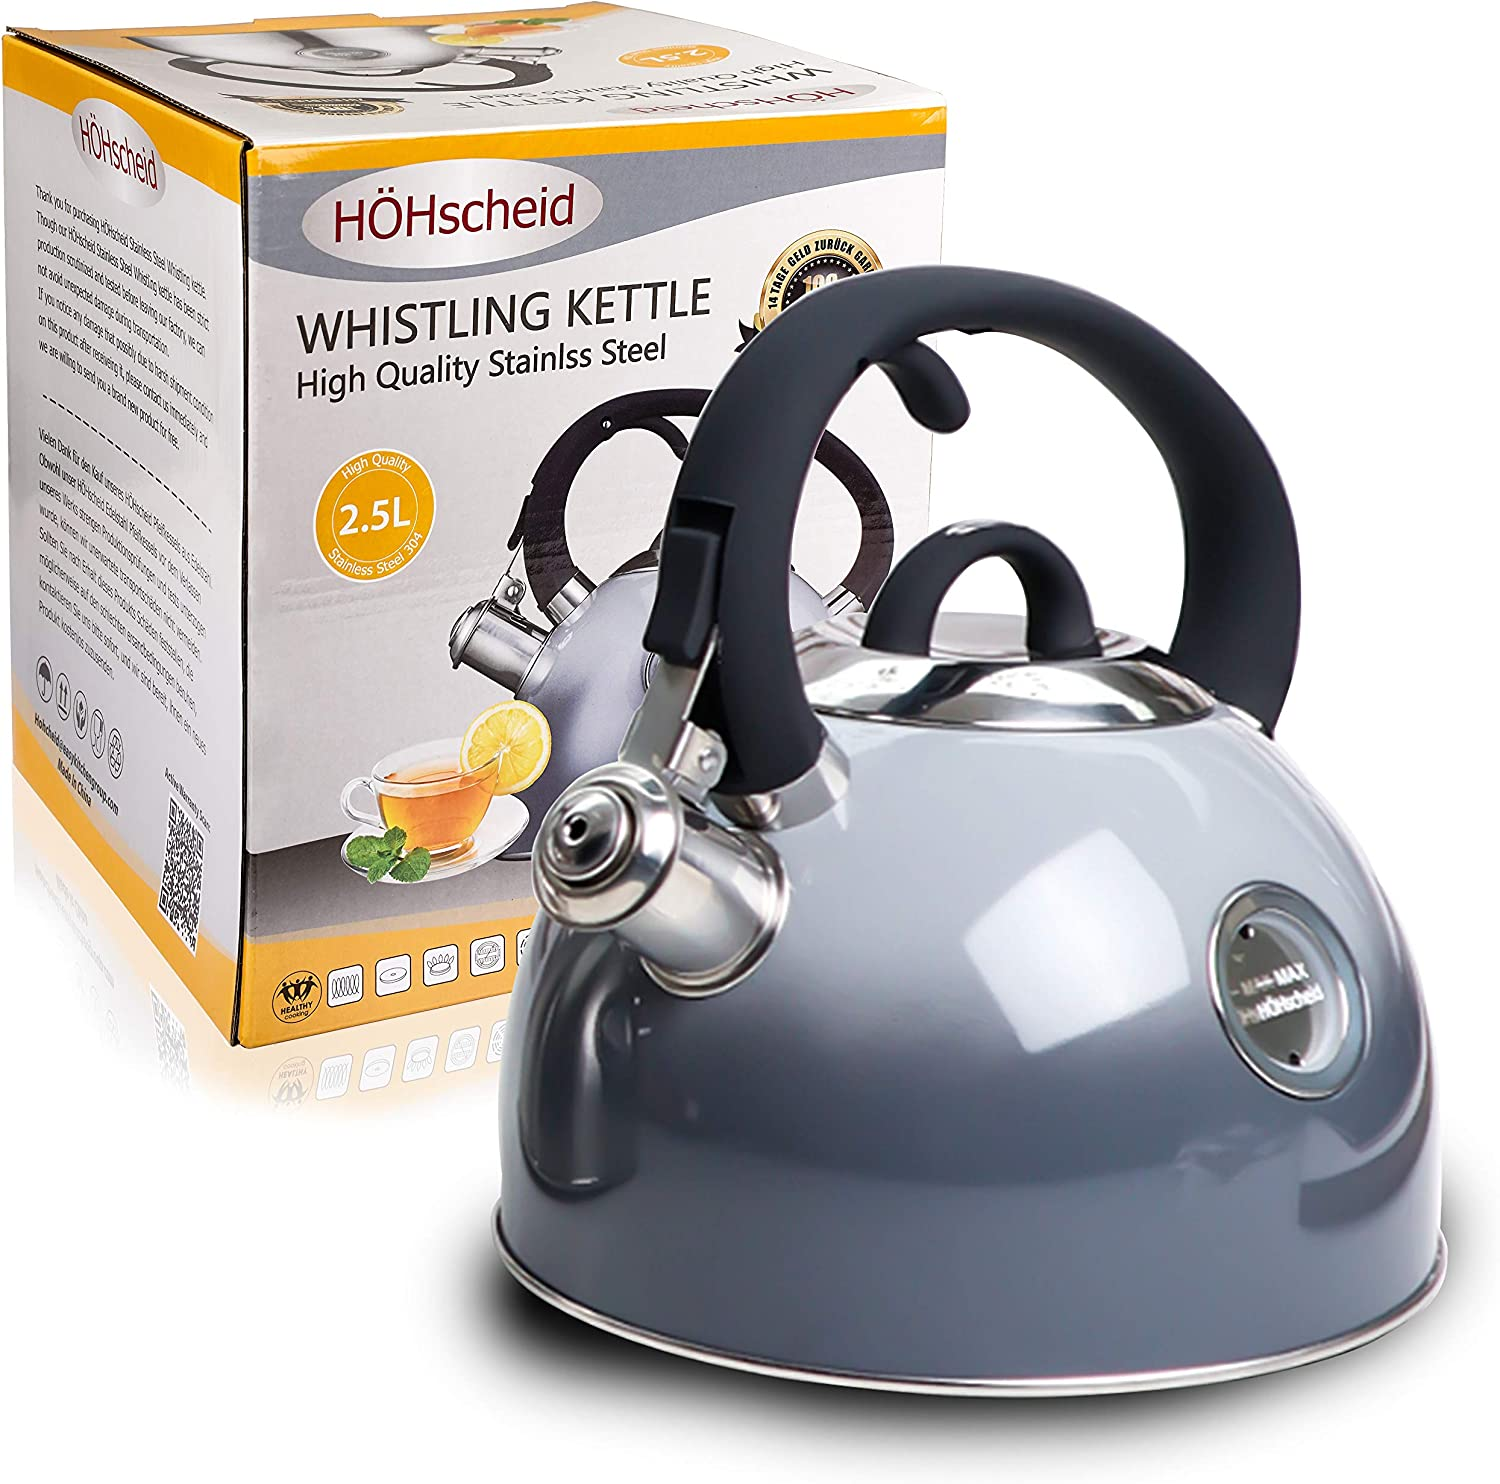 Whistling Kettle, HOHSCHEID 18/10 Food -Grade Stainless Steel Stovetop Tea Kettles, Kettle Body with Visible Window of Maximum Waterline and Tea Pot Ergonomic Cool Handle (Gradient grey)